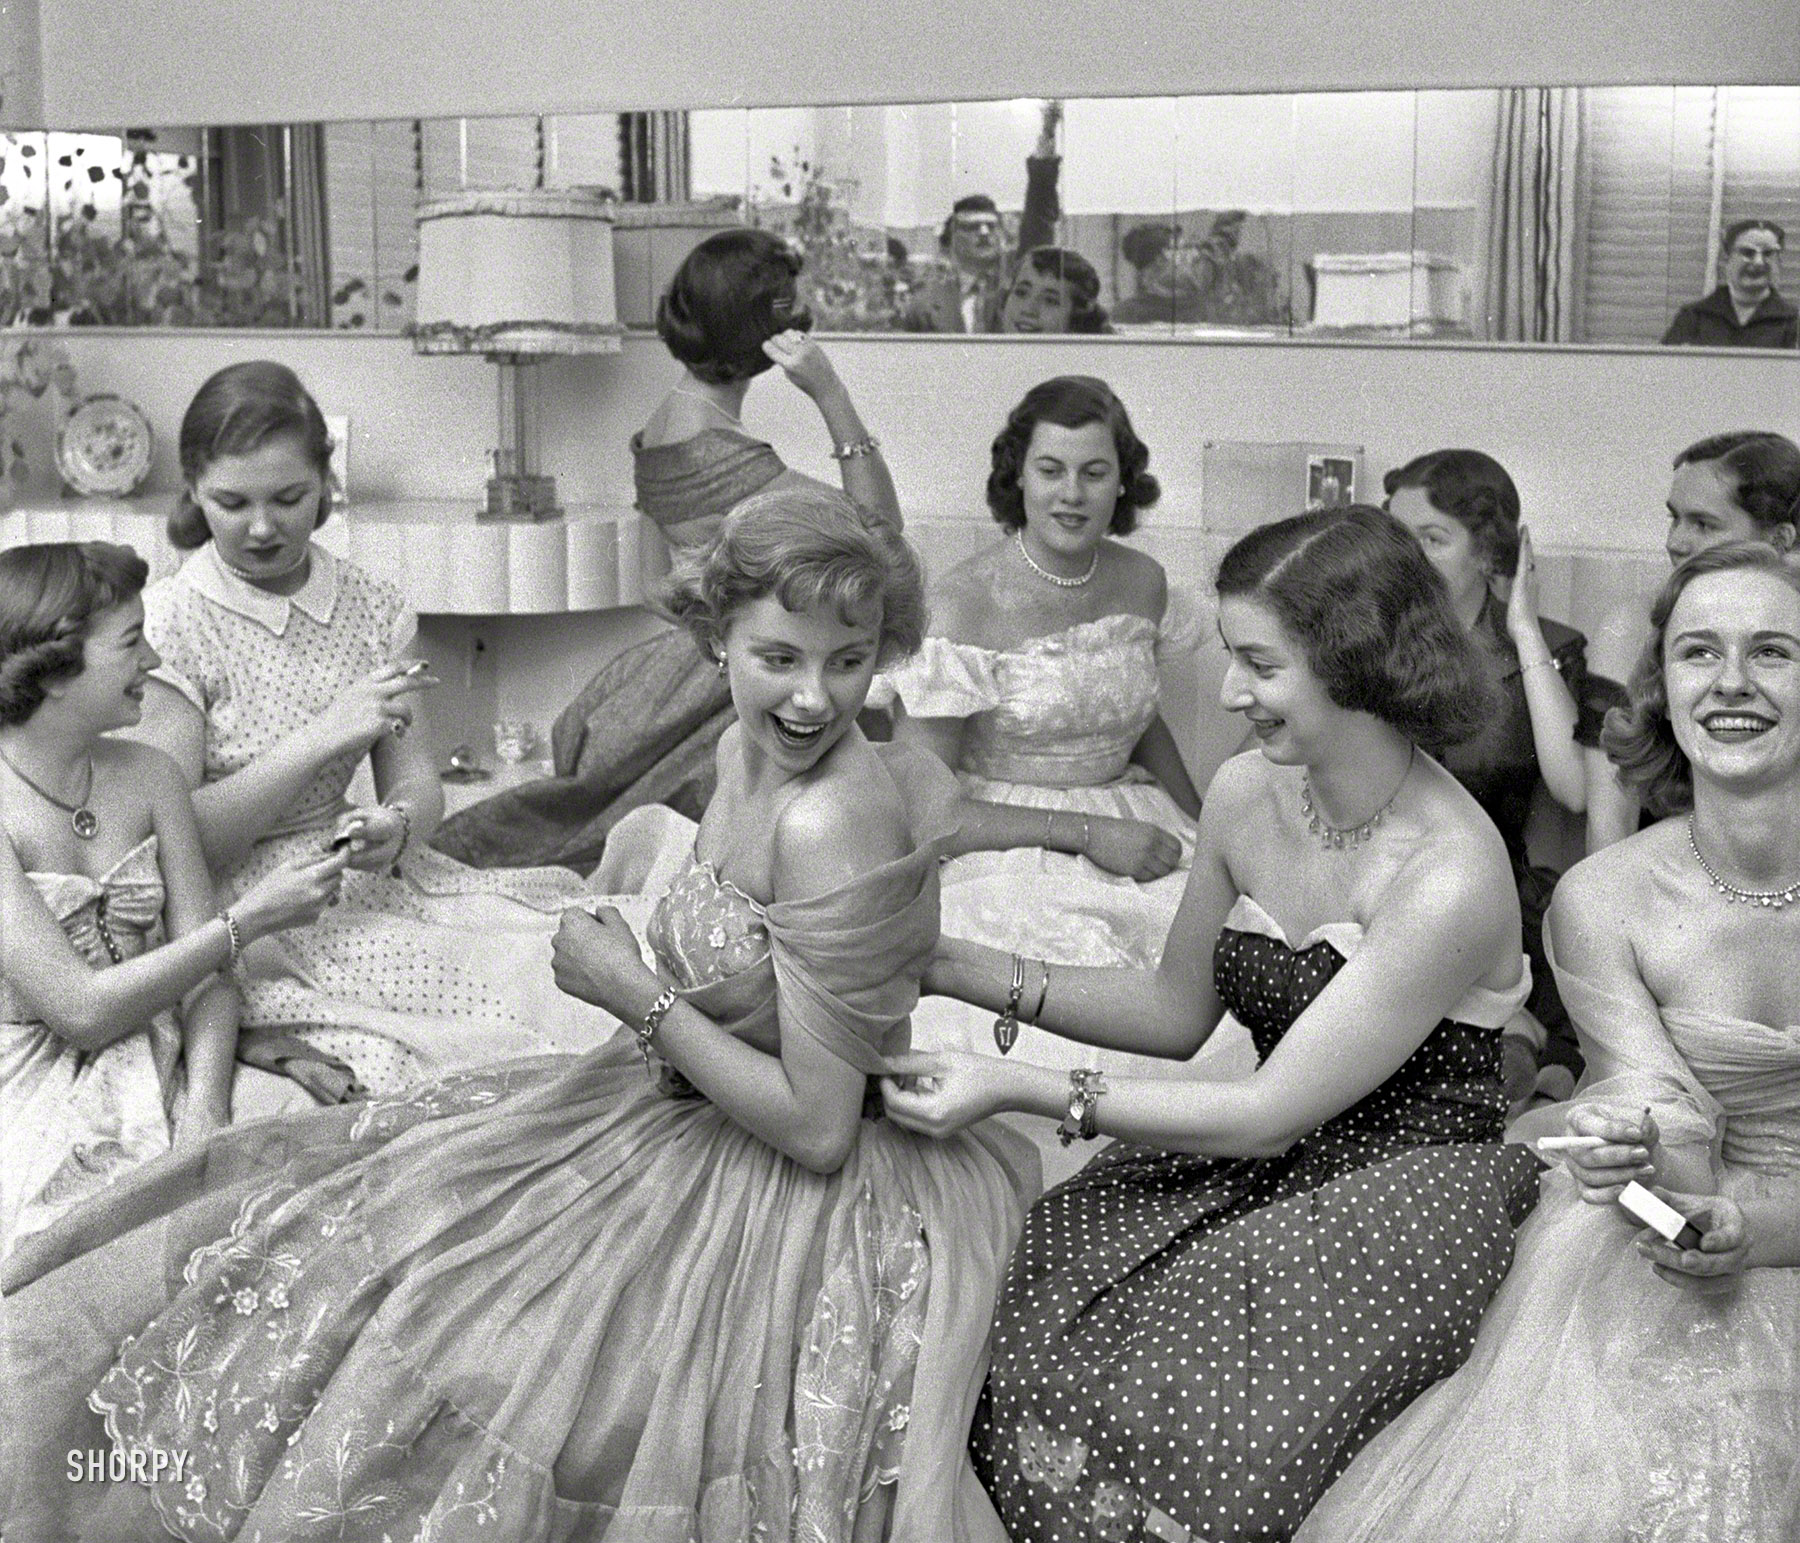 Shorpy Historic Picture Archive :: House Party: 1950 high-resolution photo